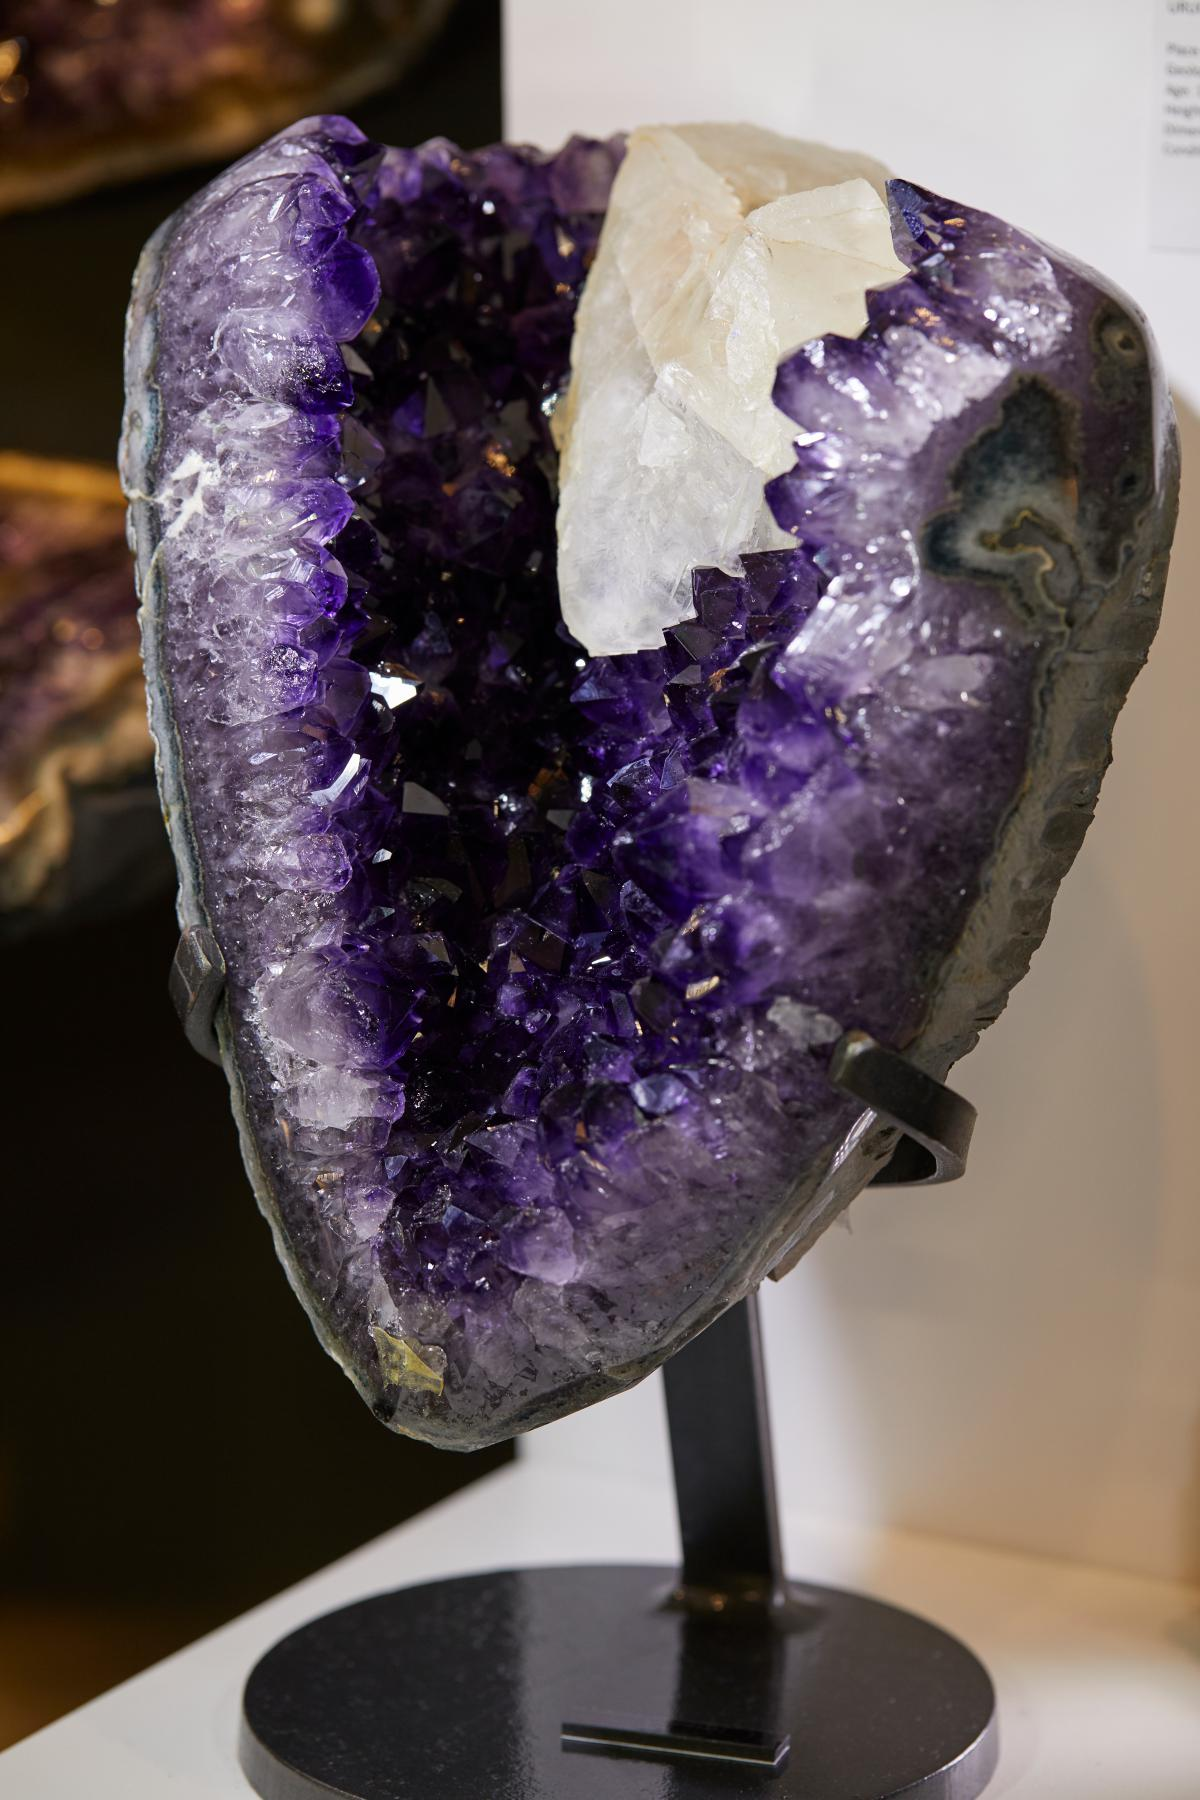 DEEP PURPLE AMETHYST CLUSTER WITH CALCITE AND GREY